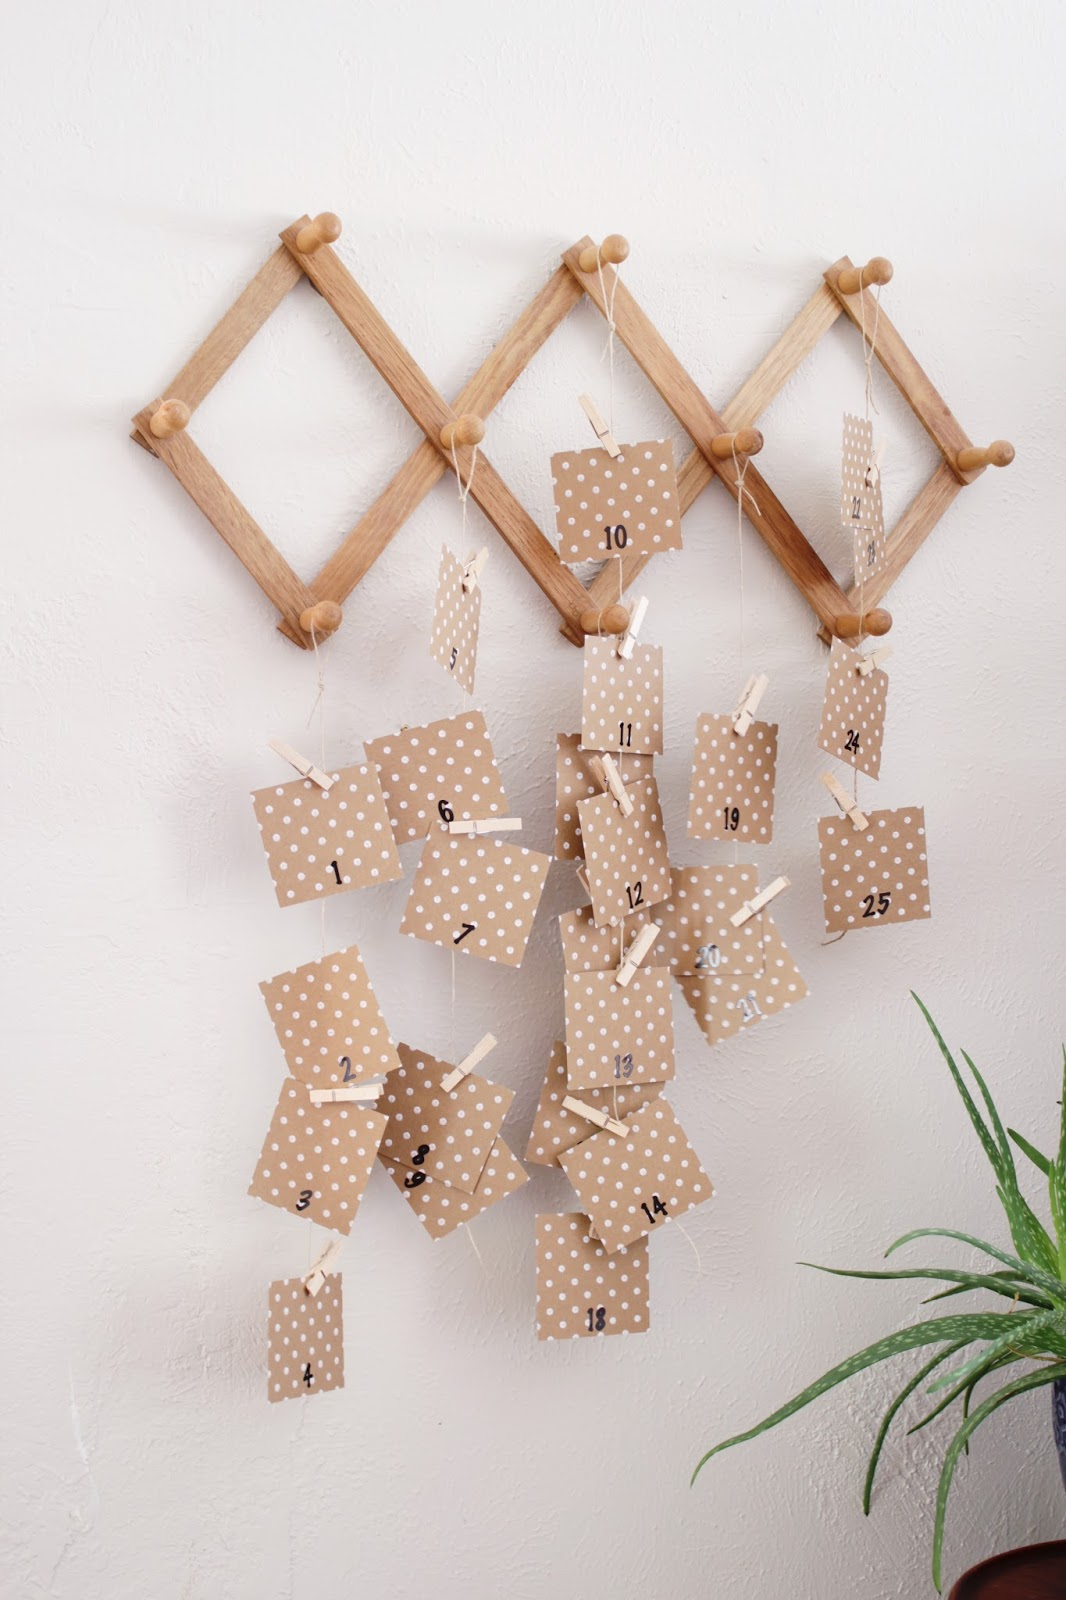 This Christmas Advent calendar wall hanging is a simple way to countdown and enjoy the season with your kids.